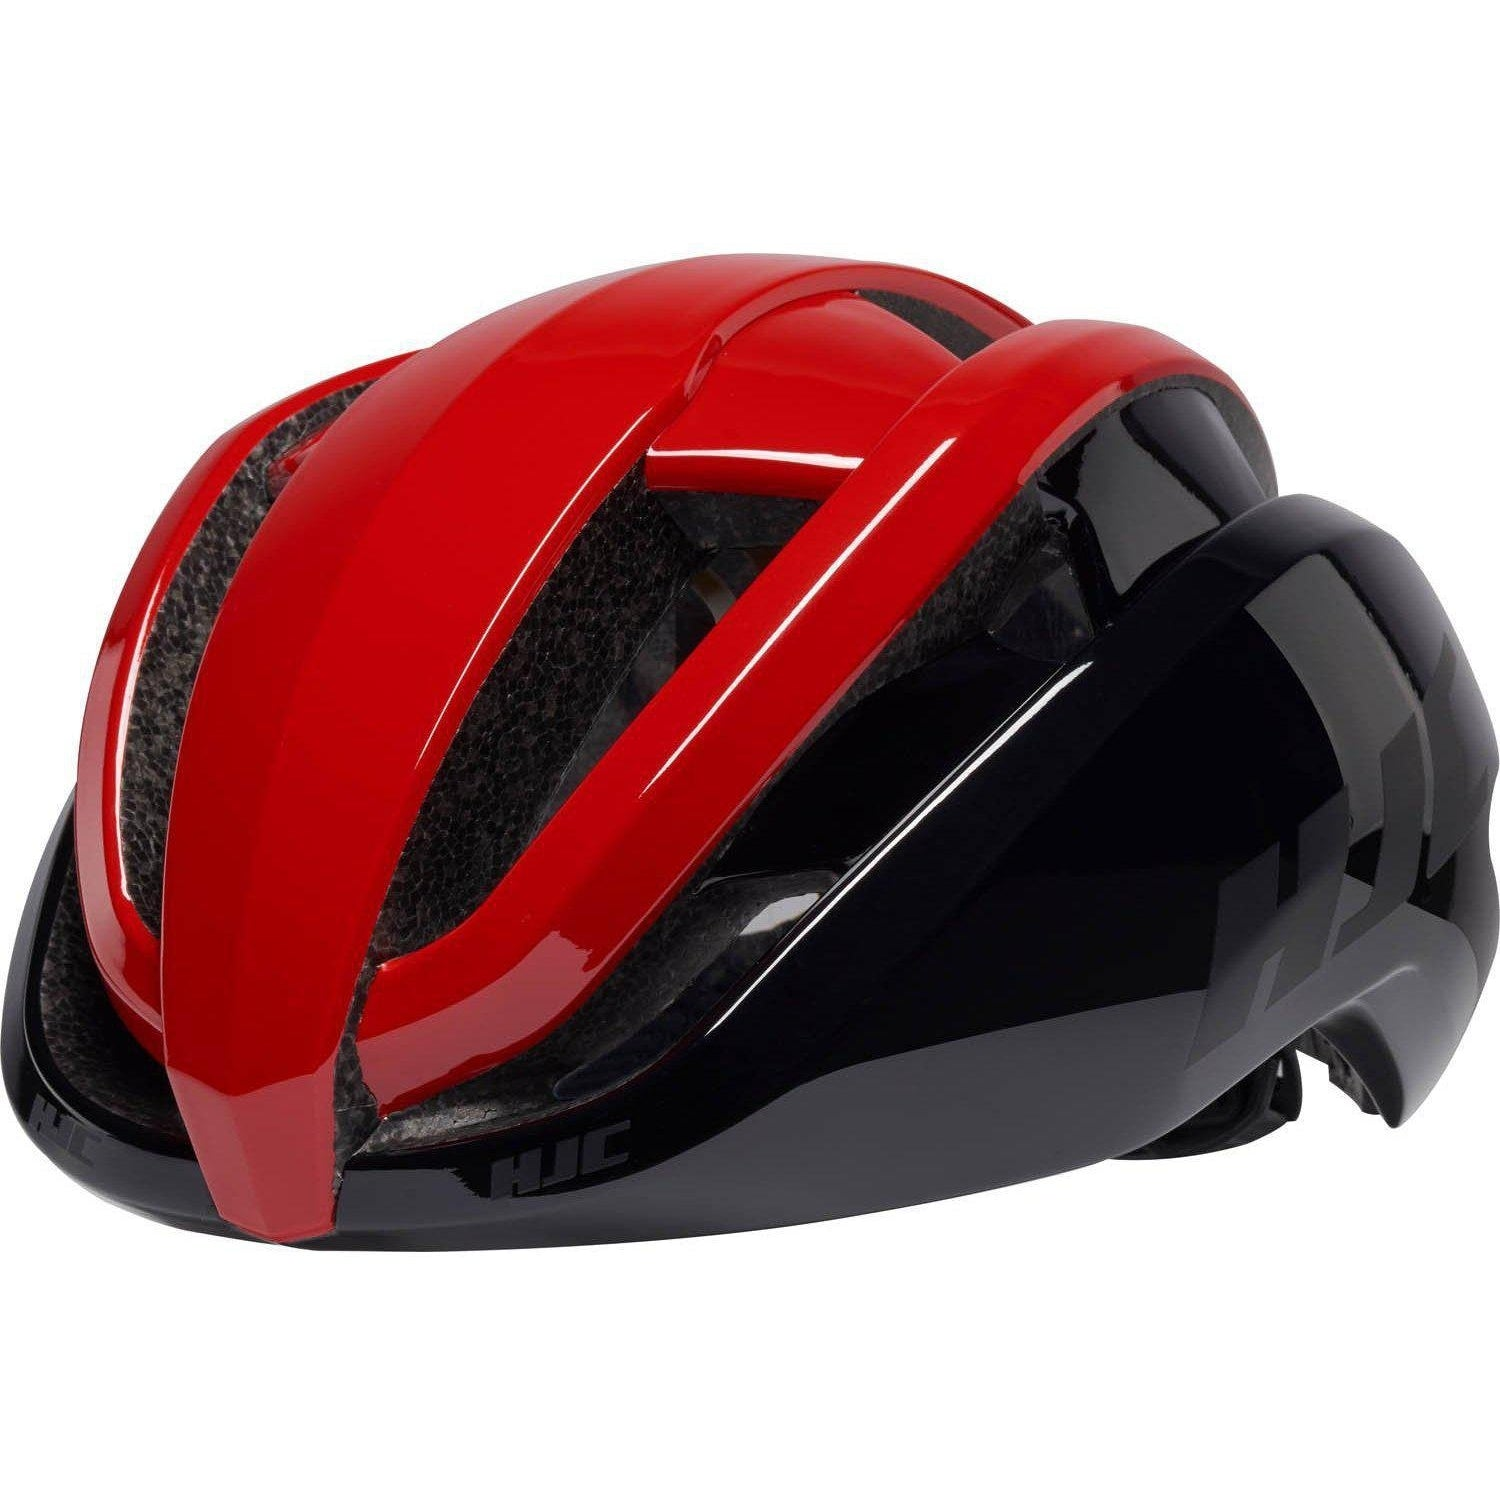 HJC-HJC Ibex 2.0 Road Cycling Helmet-Red/Black-S-HJC81240101-saddleback-elite-performance-cycling